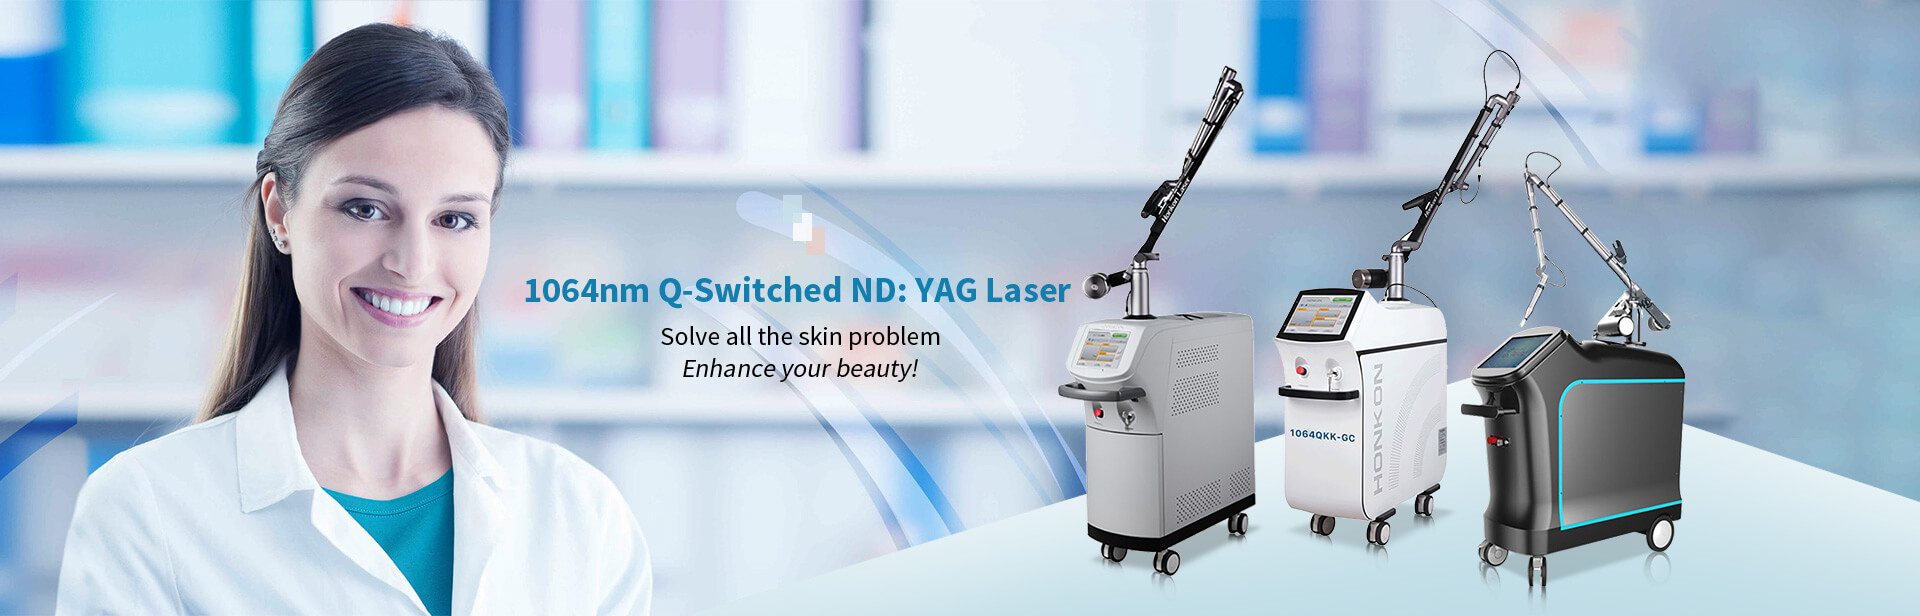 Diode Laser & IPL Hair Removal,Beauty Equipment Supplier